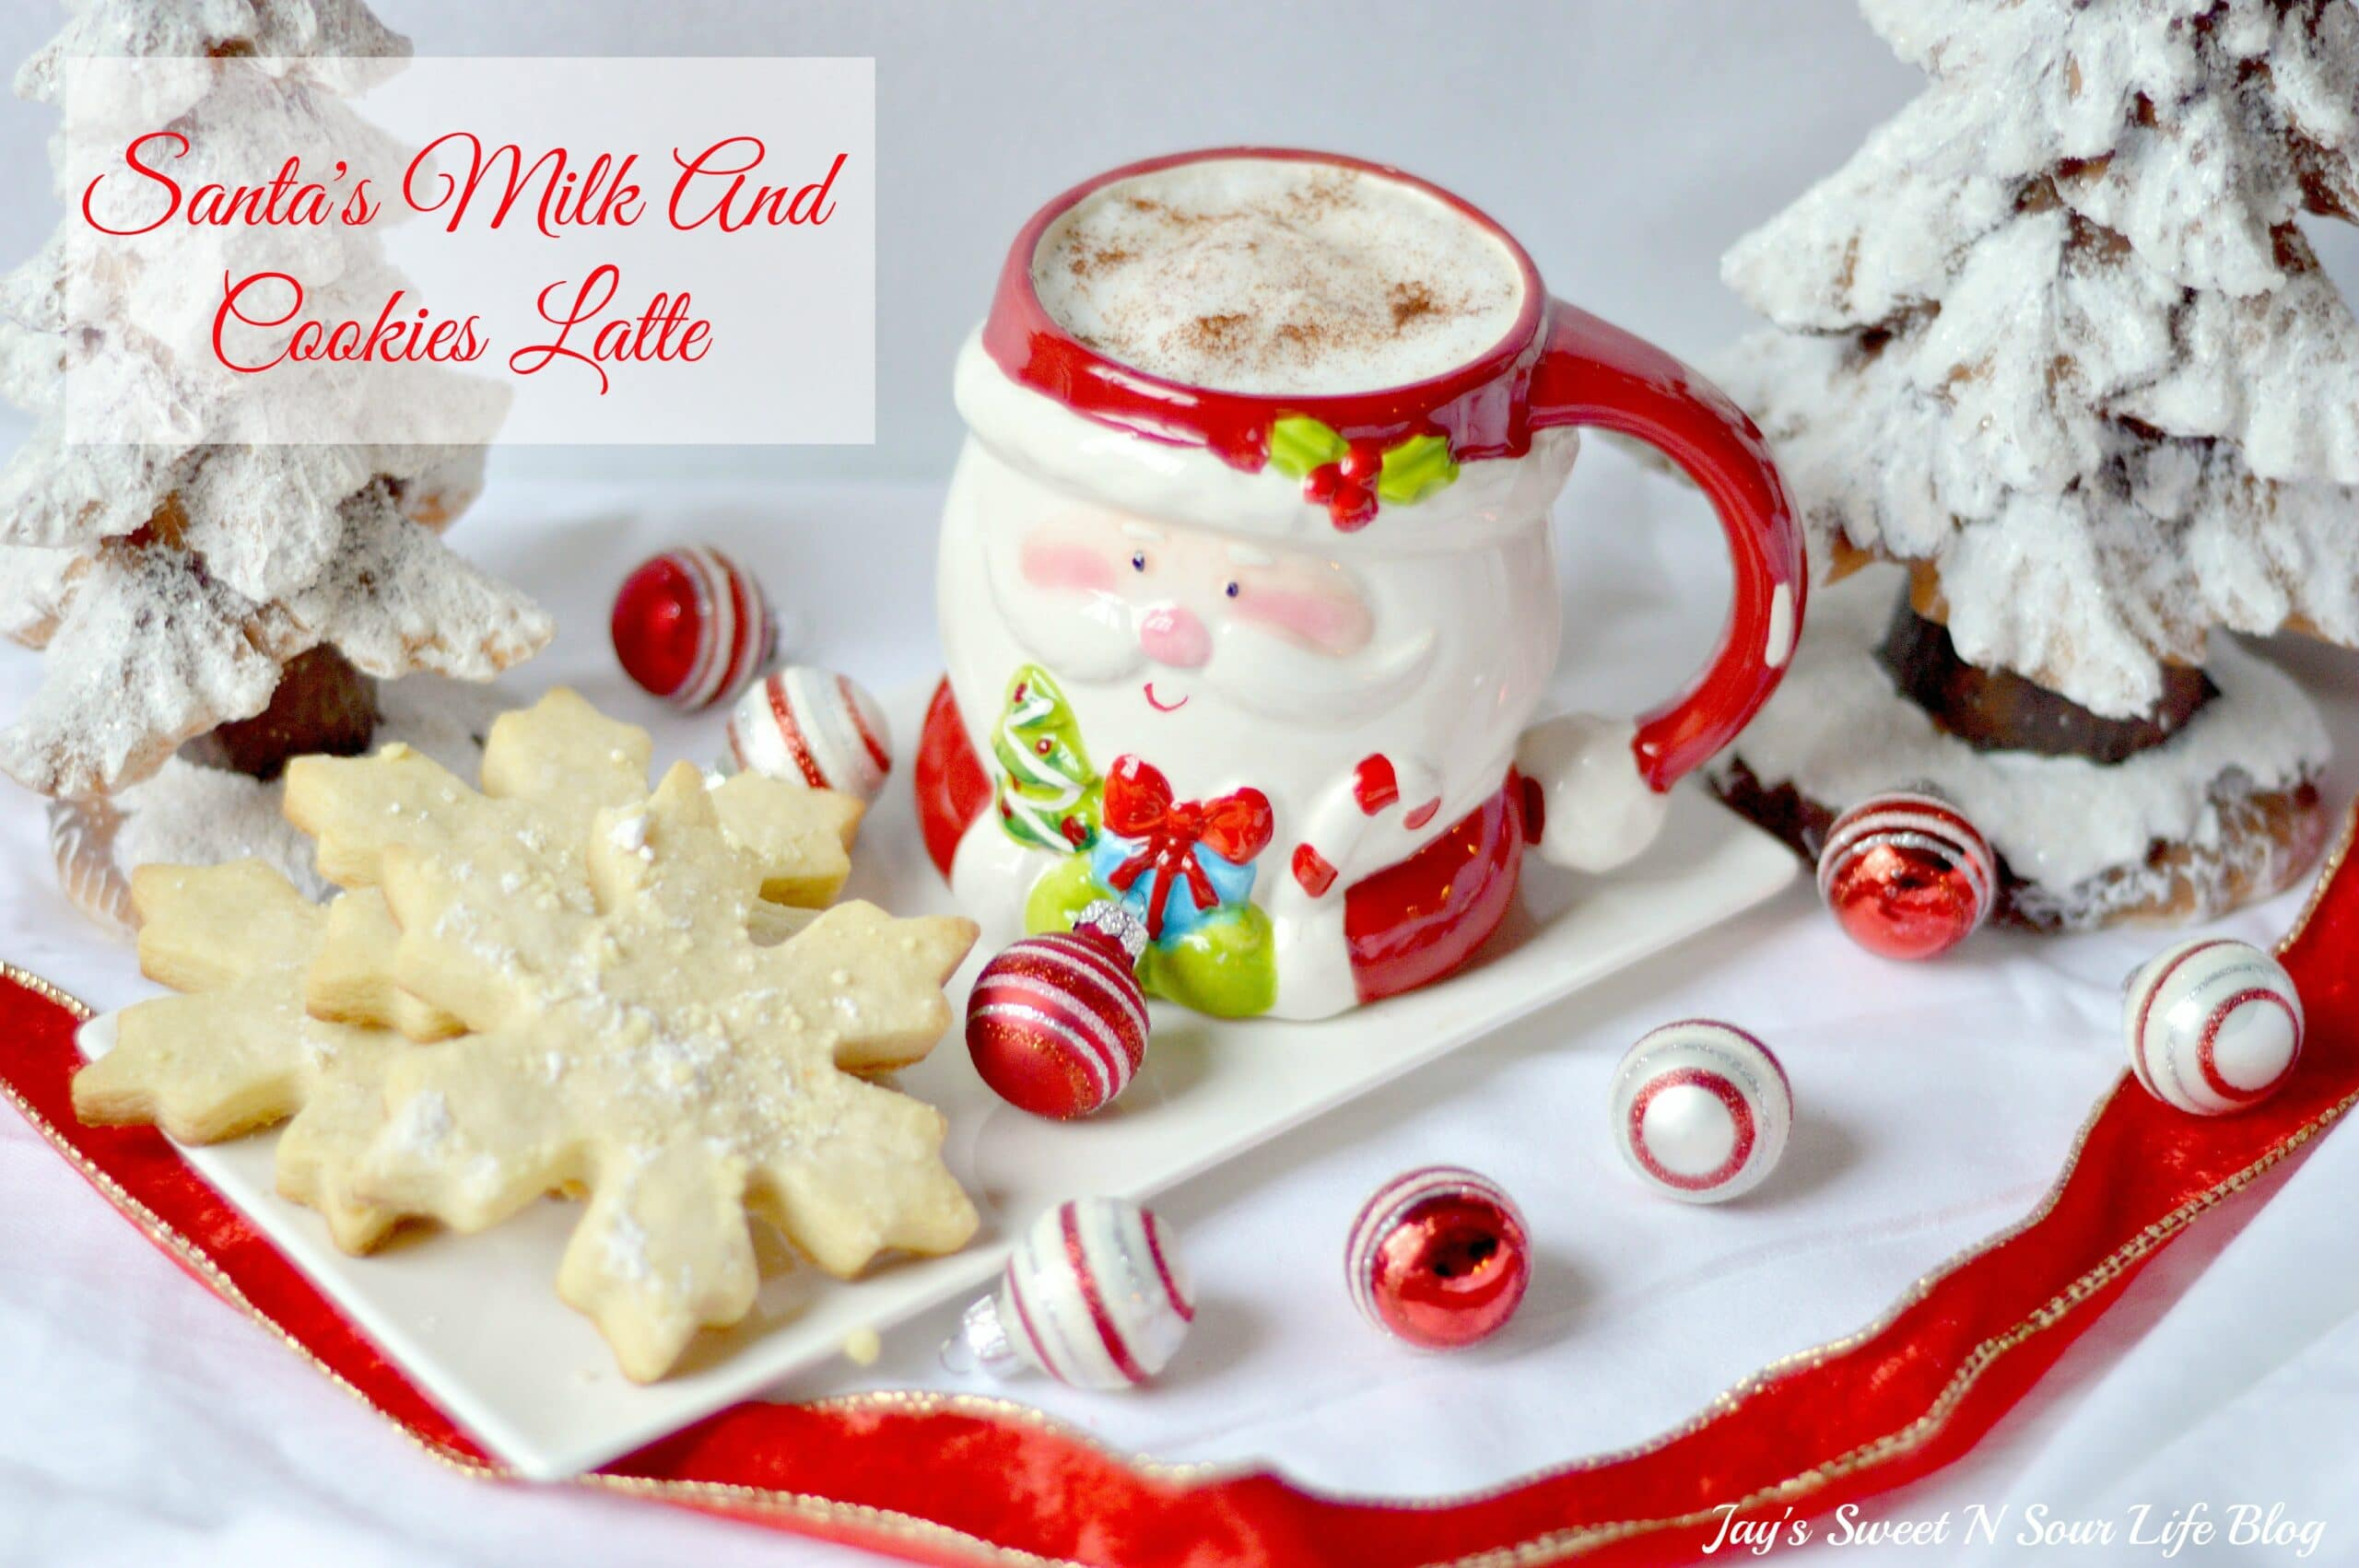 Santas milk and cookies latte Hero 1.3 Final Title. Treat Santa to his very own Santa's Milk and Cookies Latte, paired with a buttery snowflake cookie perfect for dipping. No milk frother needed, this delicious sugar cookie flavored latte and snowflake cookies make the perfect holiday treat duo.